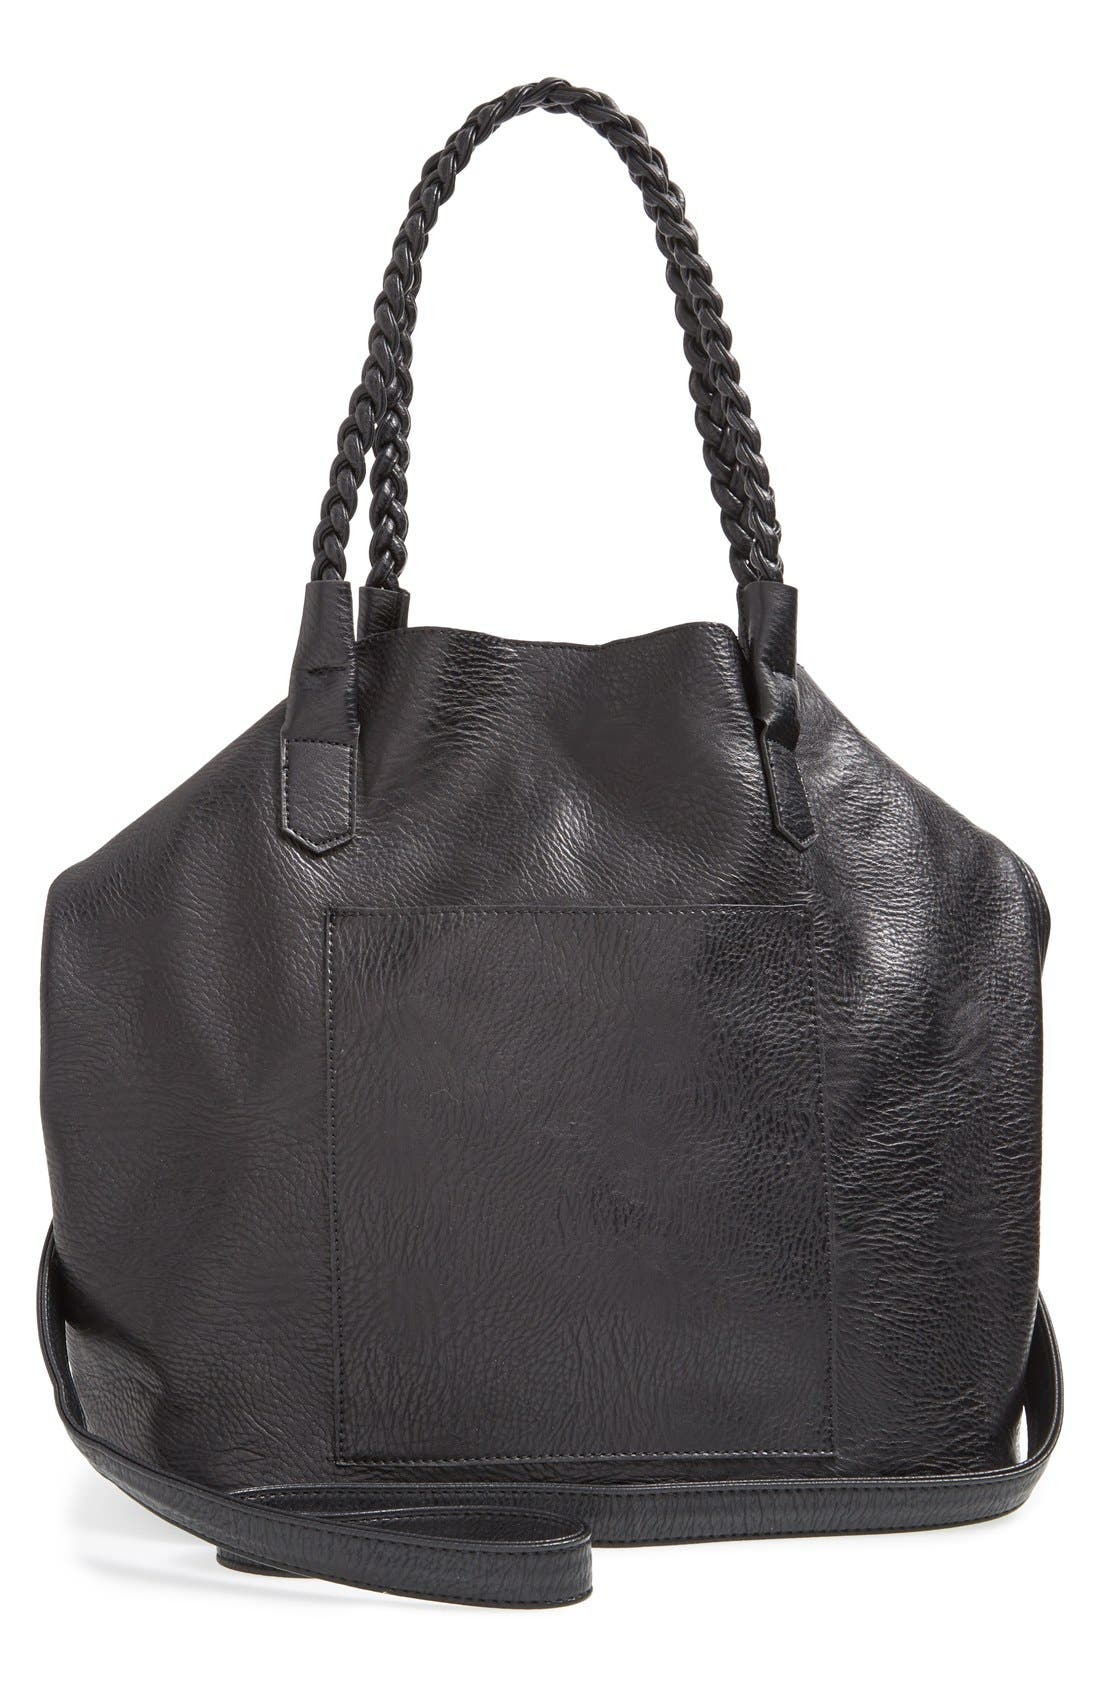 STREET LEVEL, Slouchy Faux Leather Tote with Pouch, Alternate thumbnail 5, color, 001